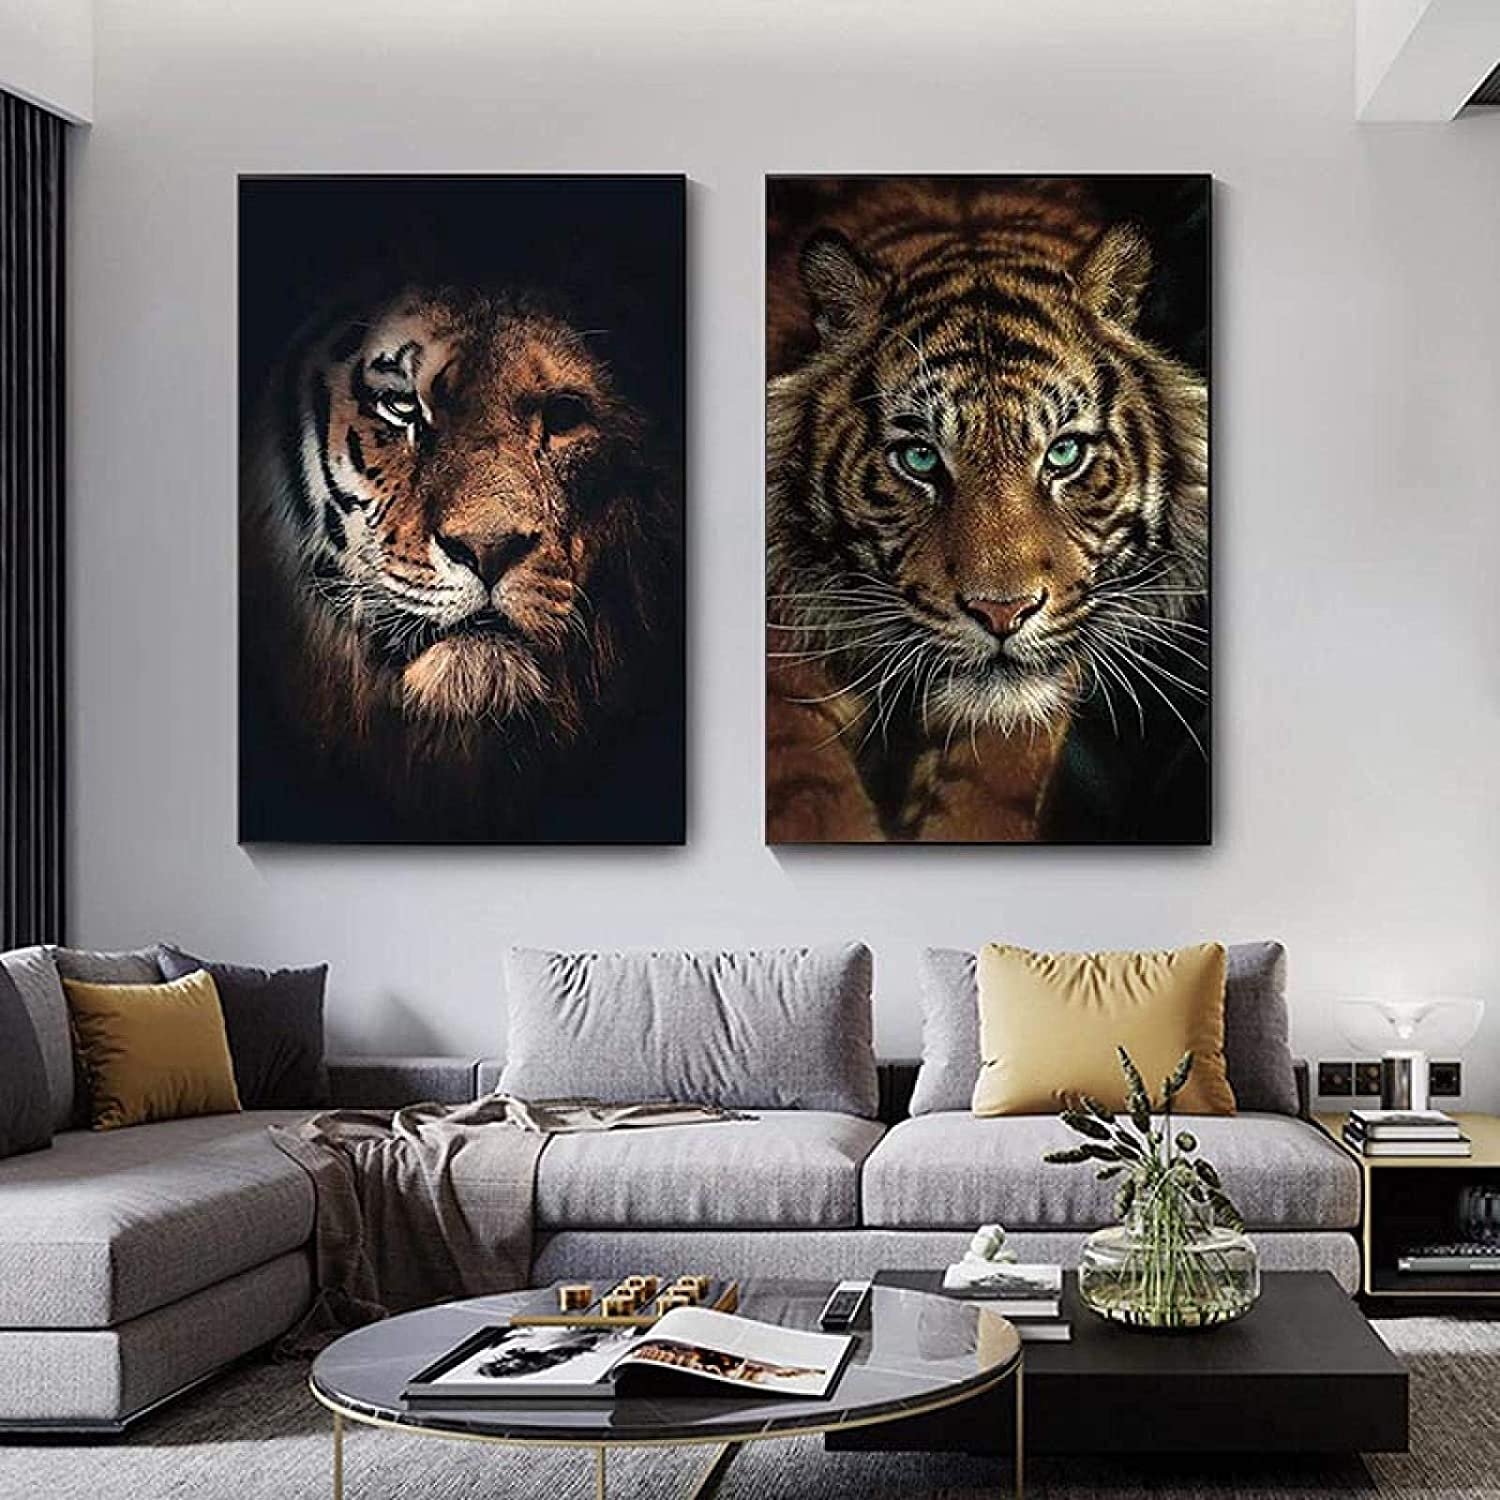 Quality inspection WJYZZT Artwork 2 Piece 15.7x23.6in No Frame Wil 40x60cm Beauty products African